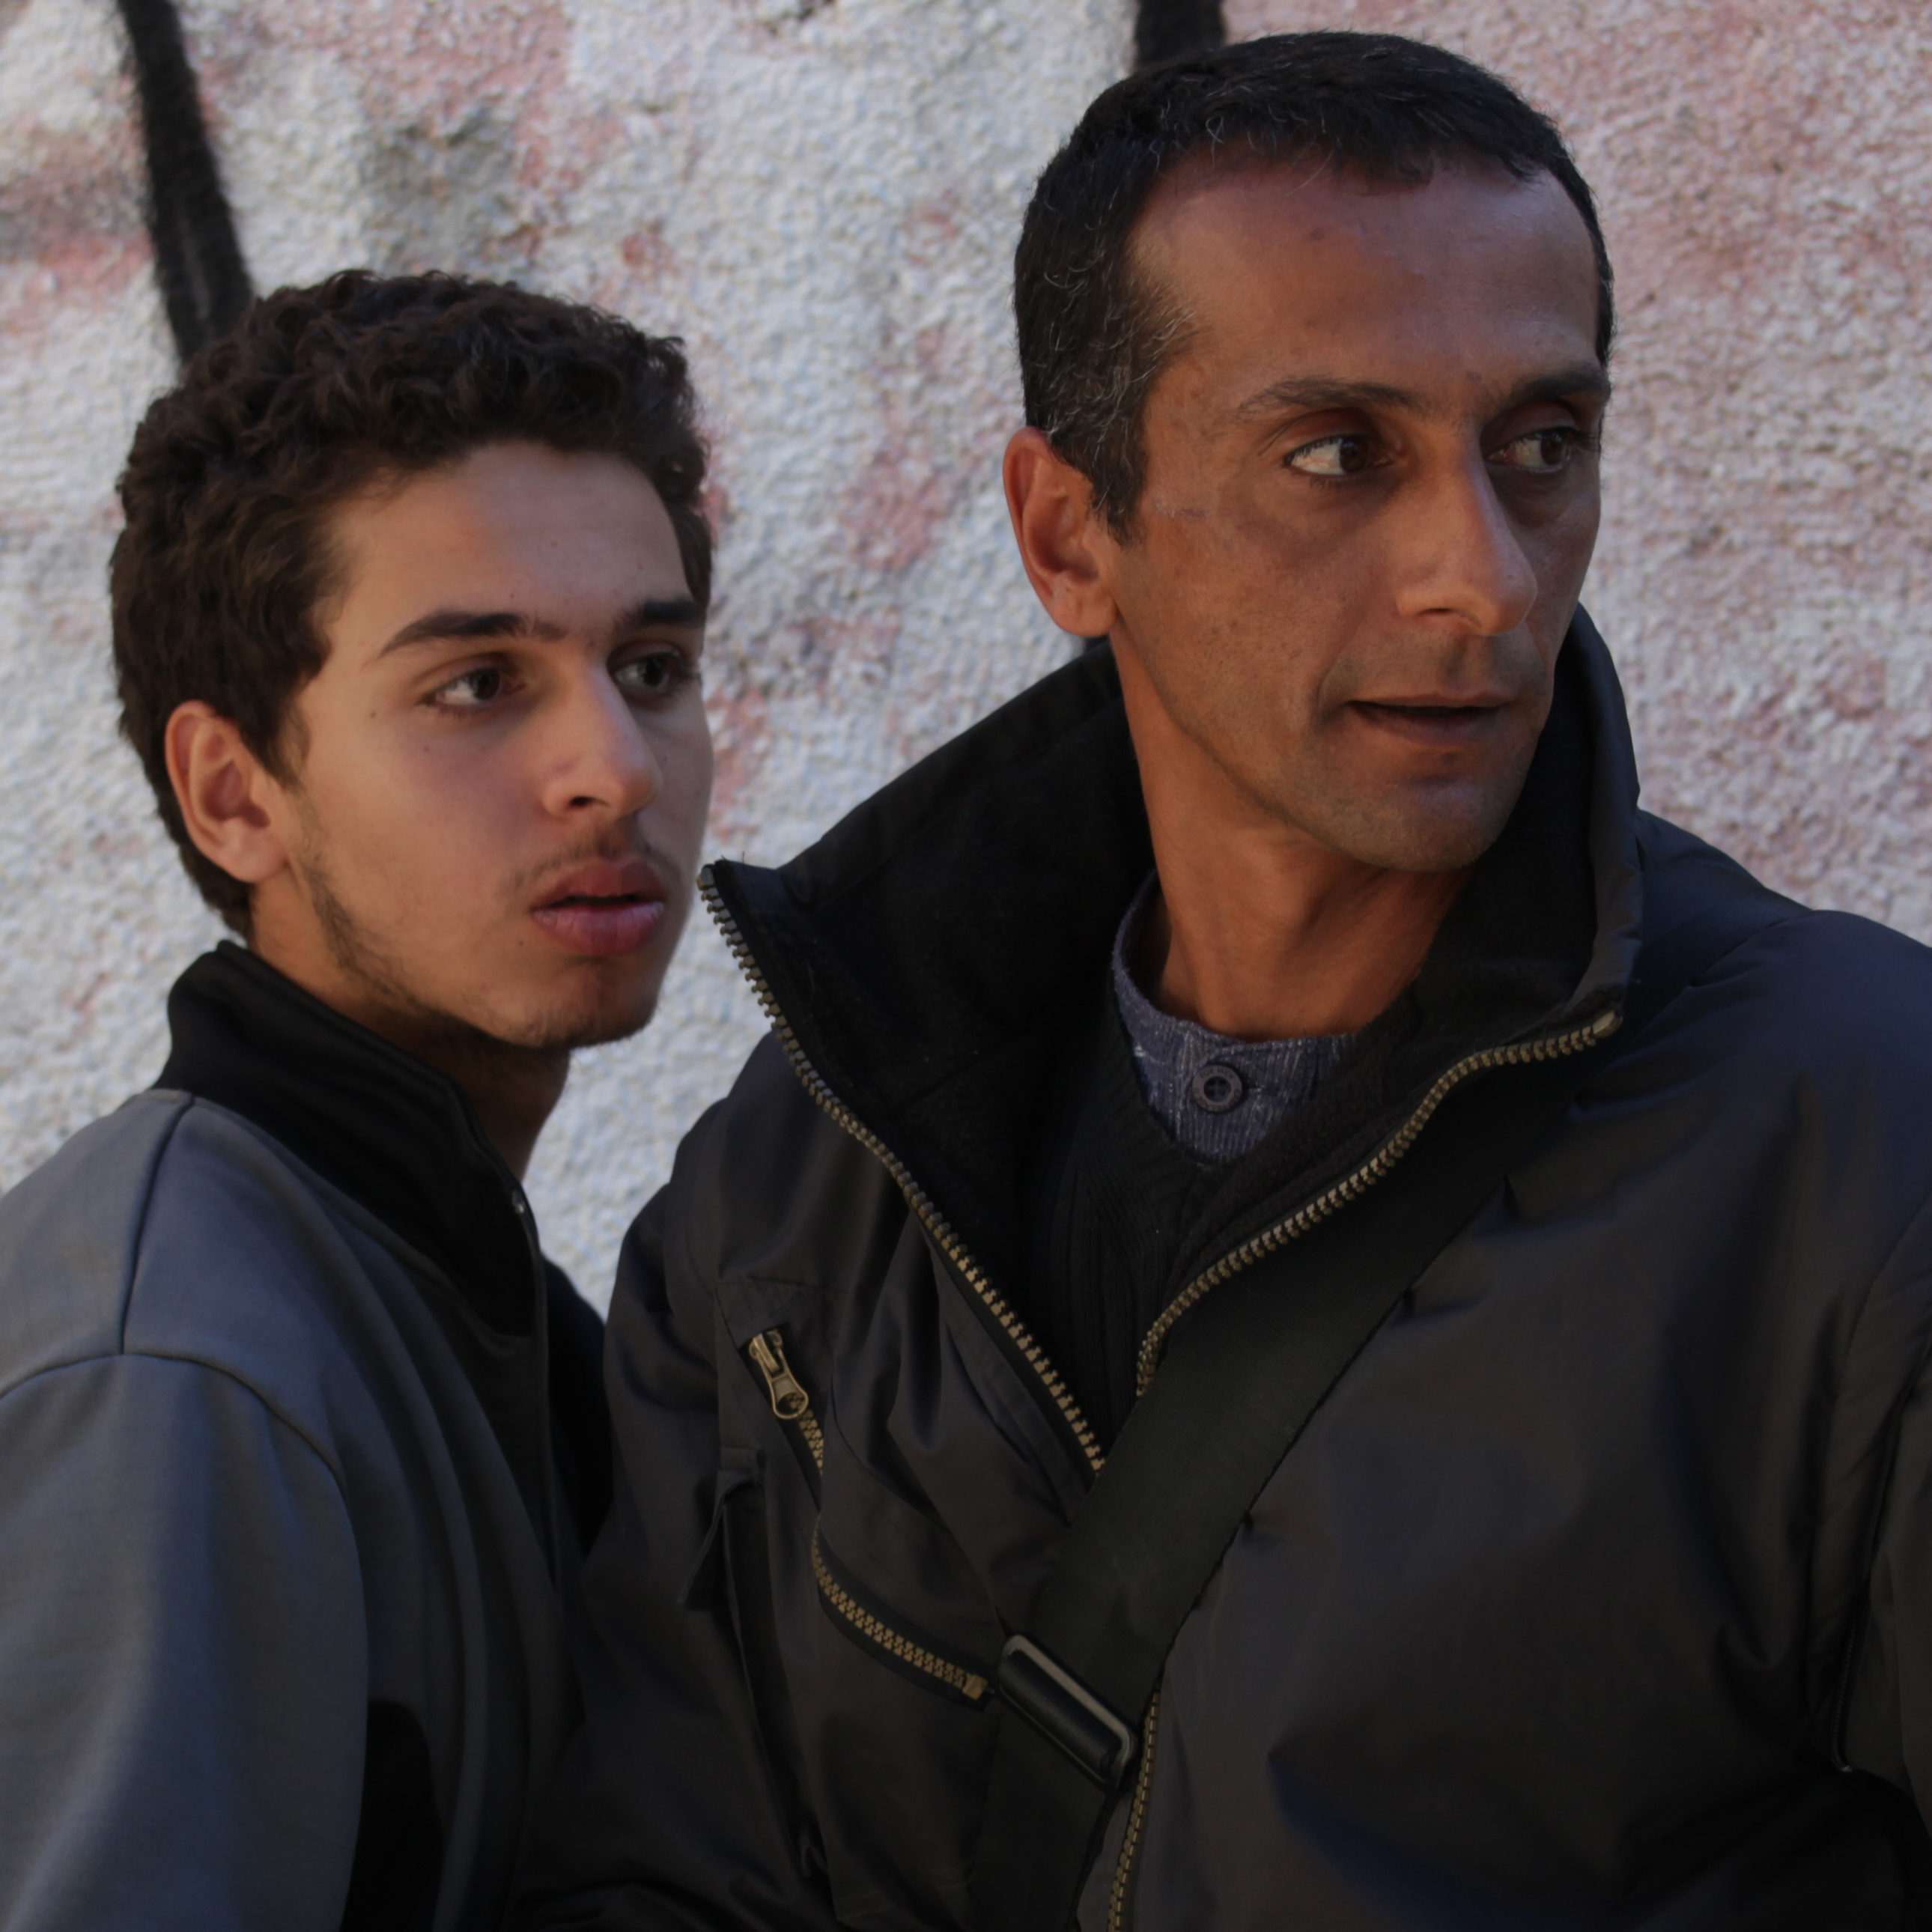 Yuval Adler's Bethlehem tells the story of Sanfur (Shadi Mar'i, left), the younger brother of a wanted Palestinian militant -- and secret informant to Razi (Tsahi Halevy), the Israeli agent who wants that brother dead.